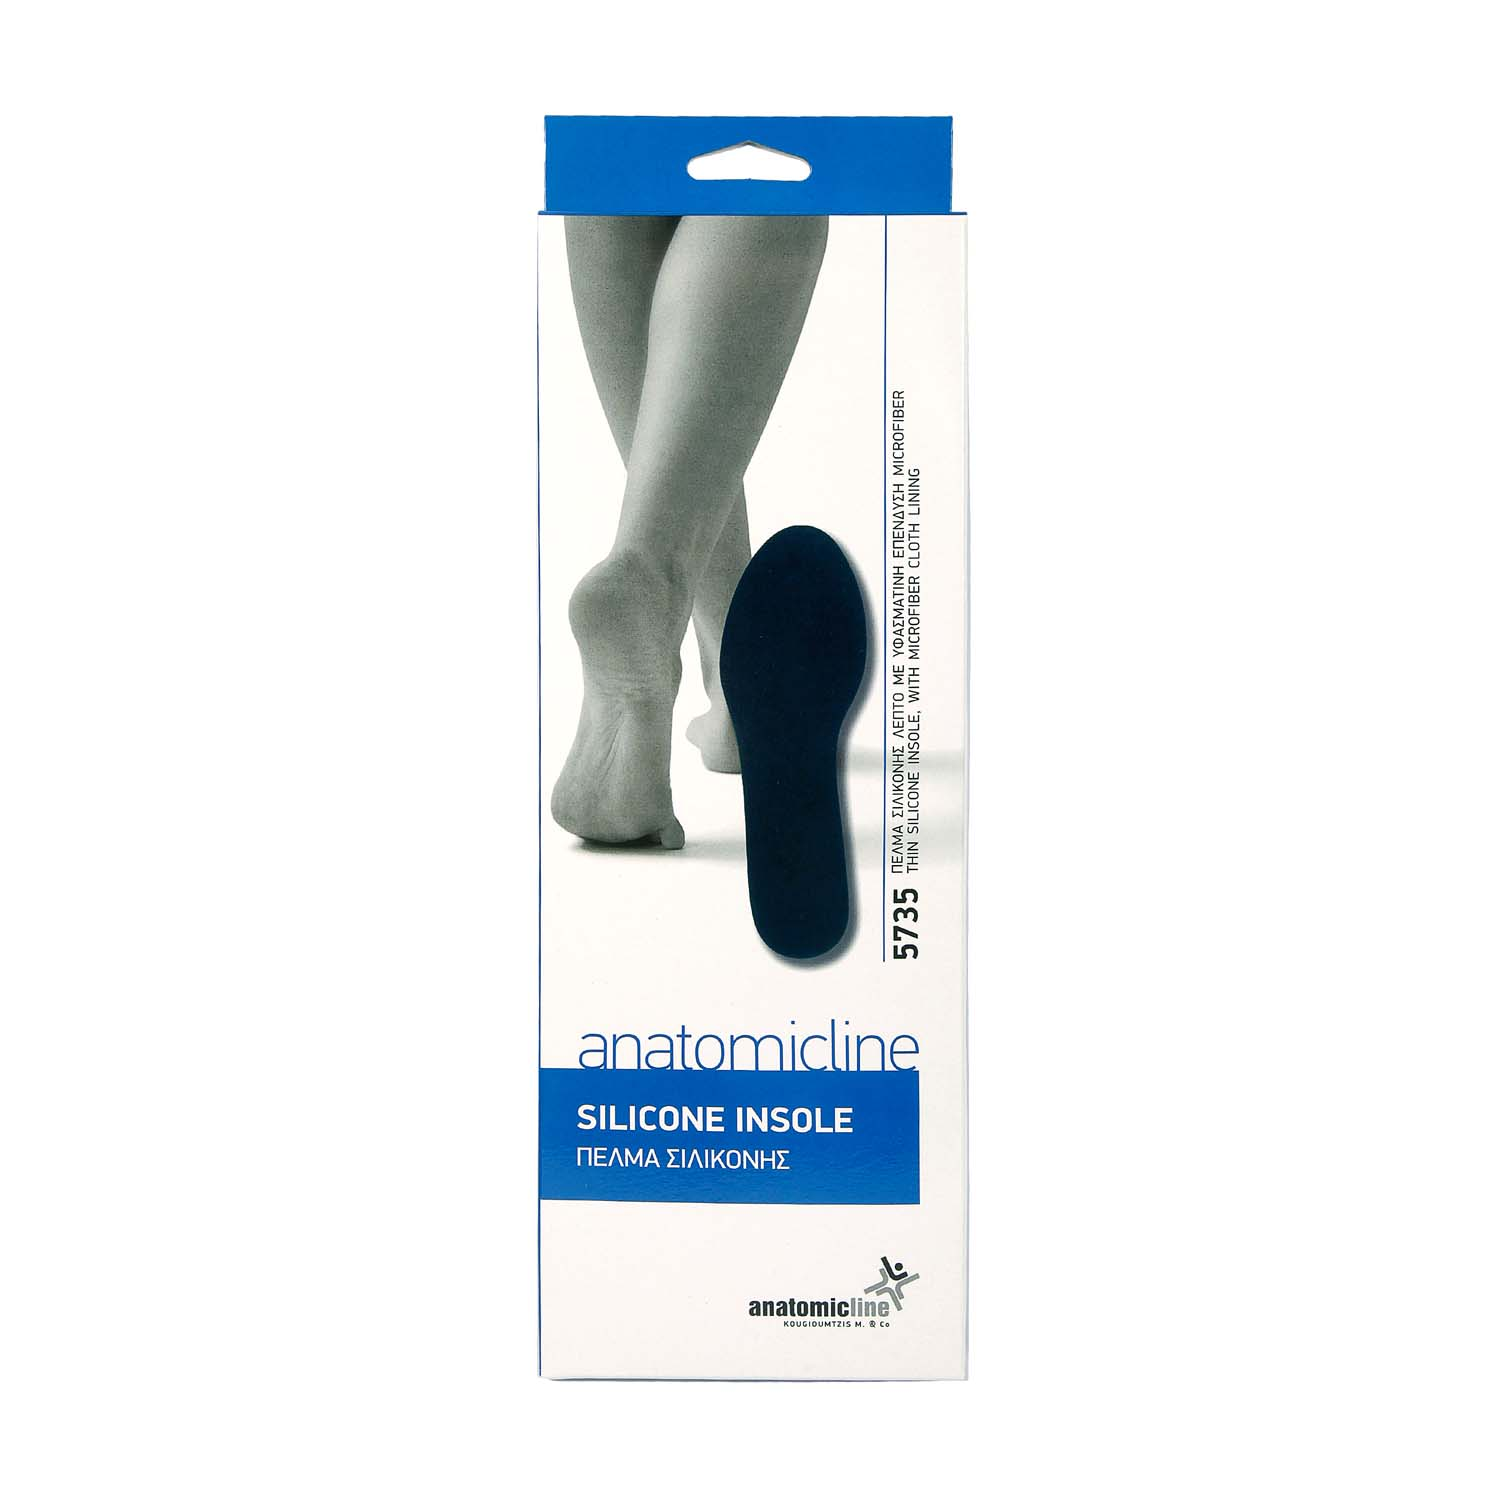 Thin Silicone insole, with microfiber cloth lining